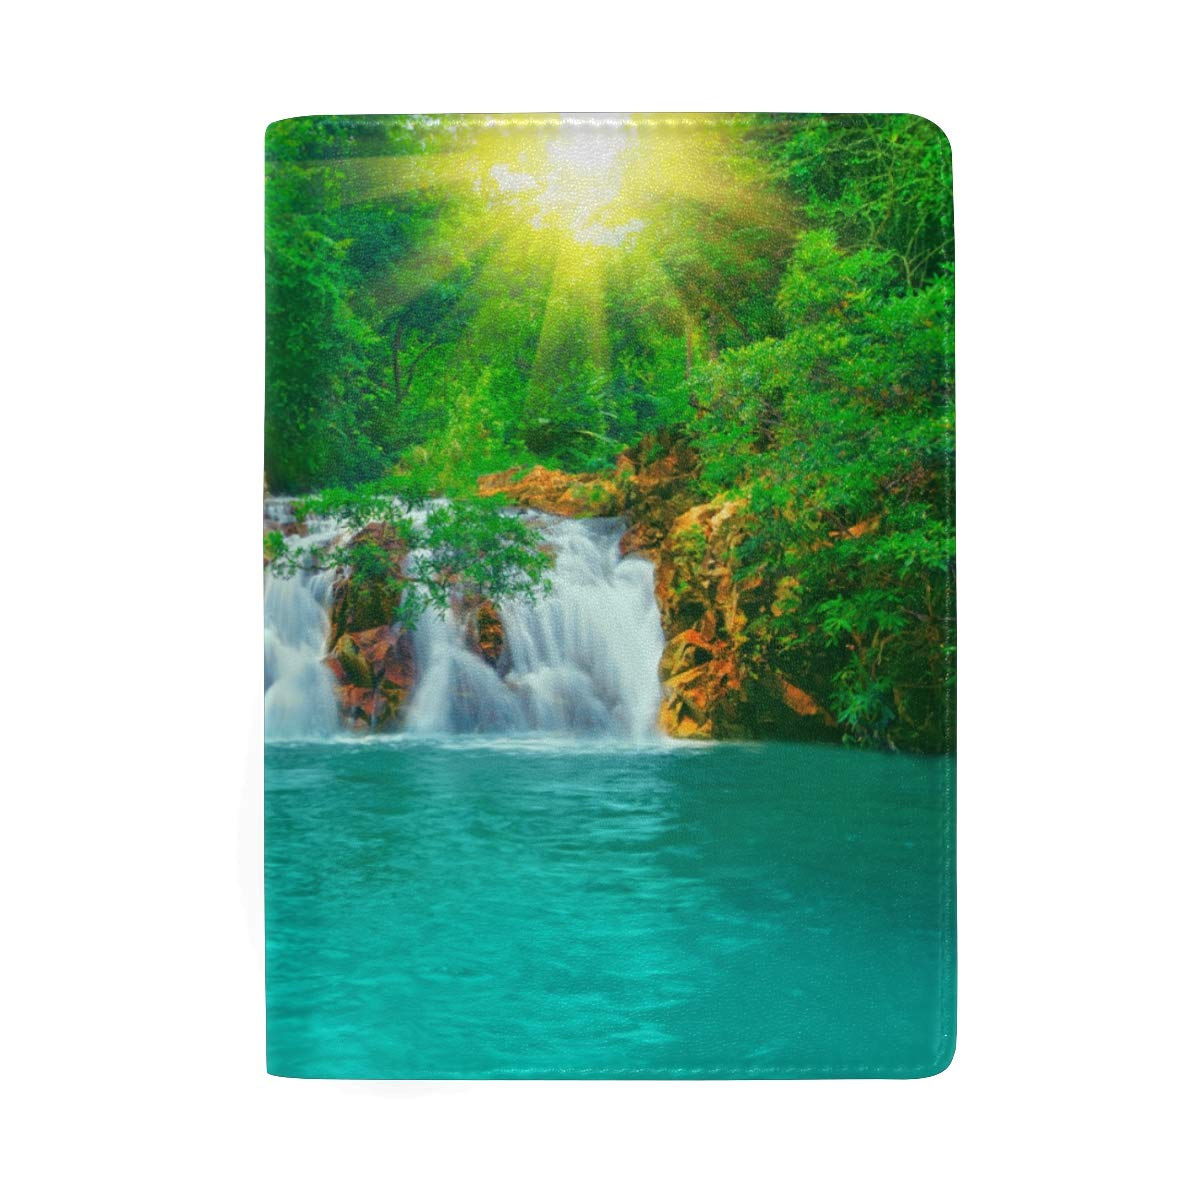 Waterfall And Quiet World Leather Passport Holder Cover Case Protector for Men Women Travel with Slots